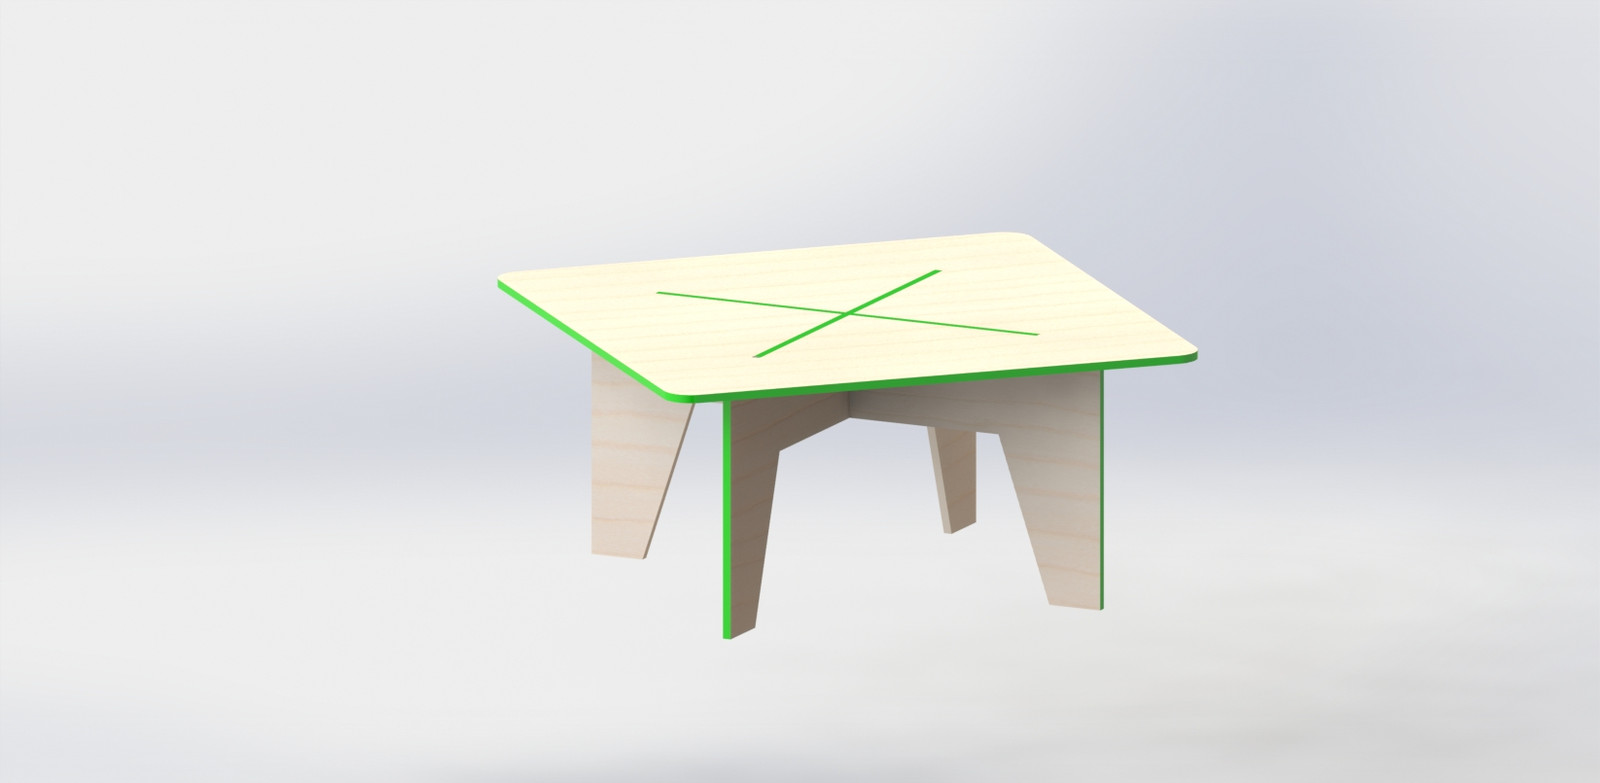 Basse Table Puzzle Collection Basse Basse Collection Table Puzzle Puzzle Table Collection Basse Puzzle Table PTOZuXklwi